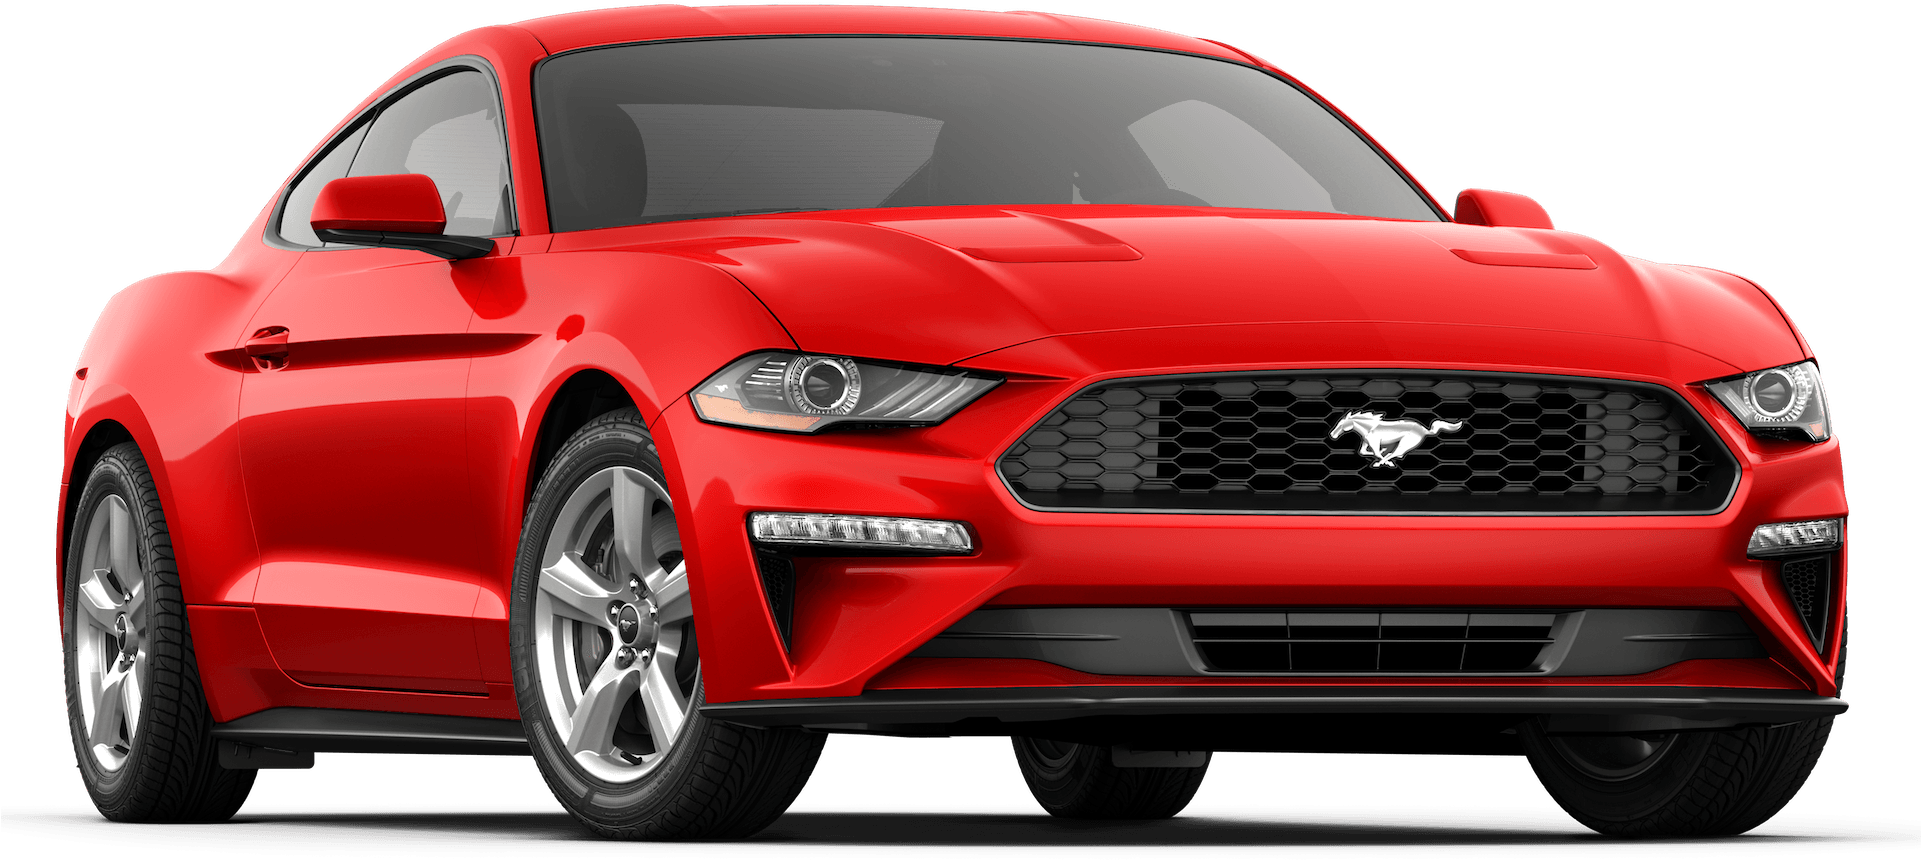 Ford Mustang Ford Mustang 2019 Ecoboost.